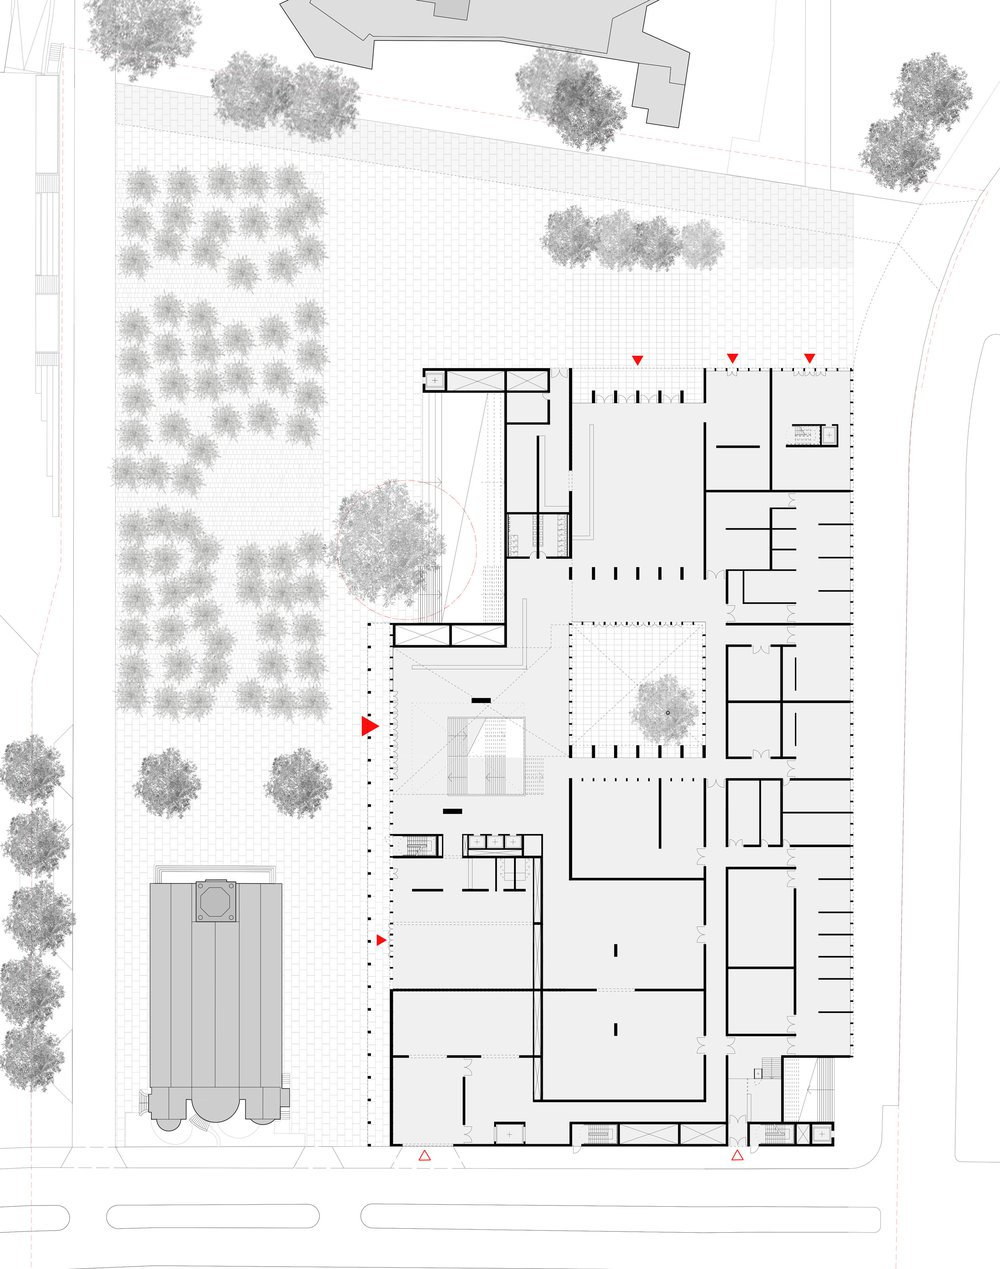 Berlin_Museum_Scrapbook_GROUND-plan-with-tress5.jpg